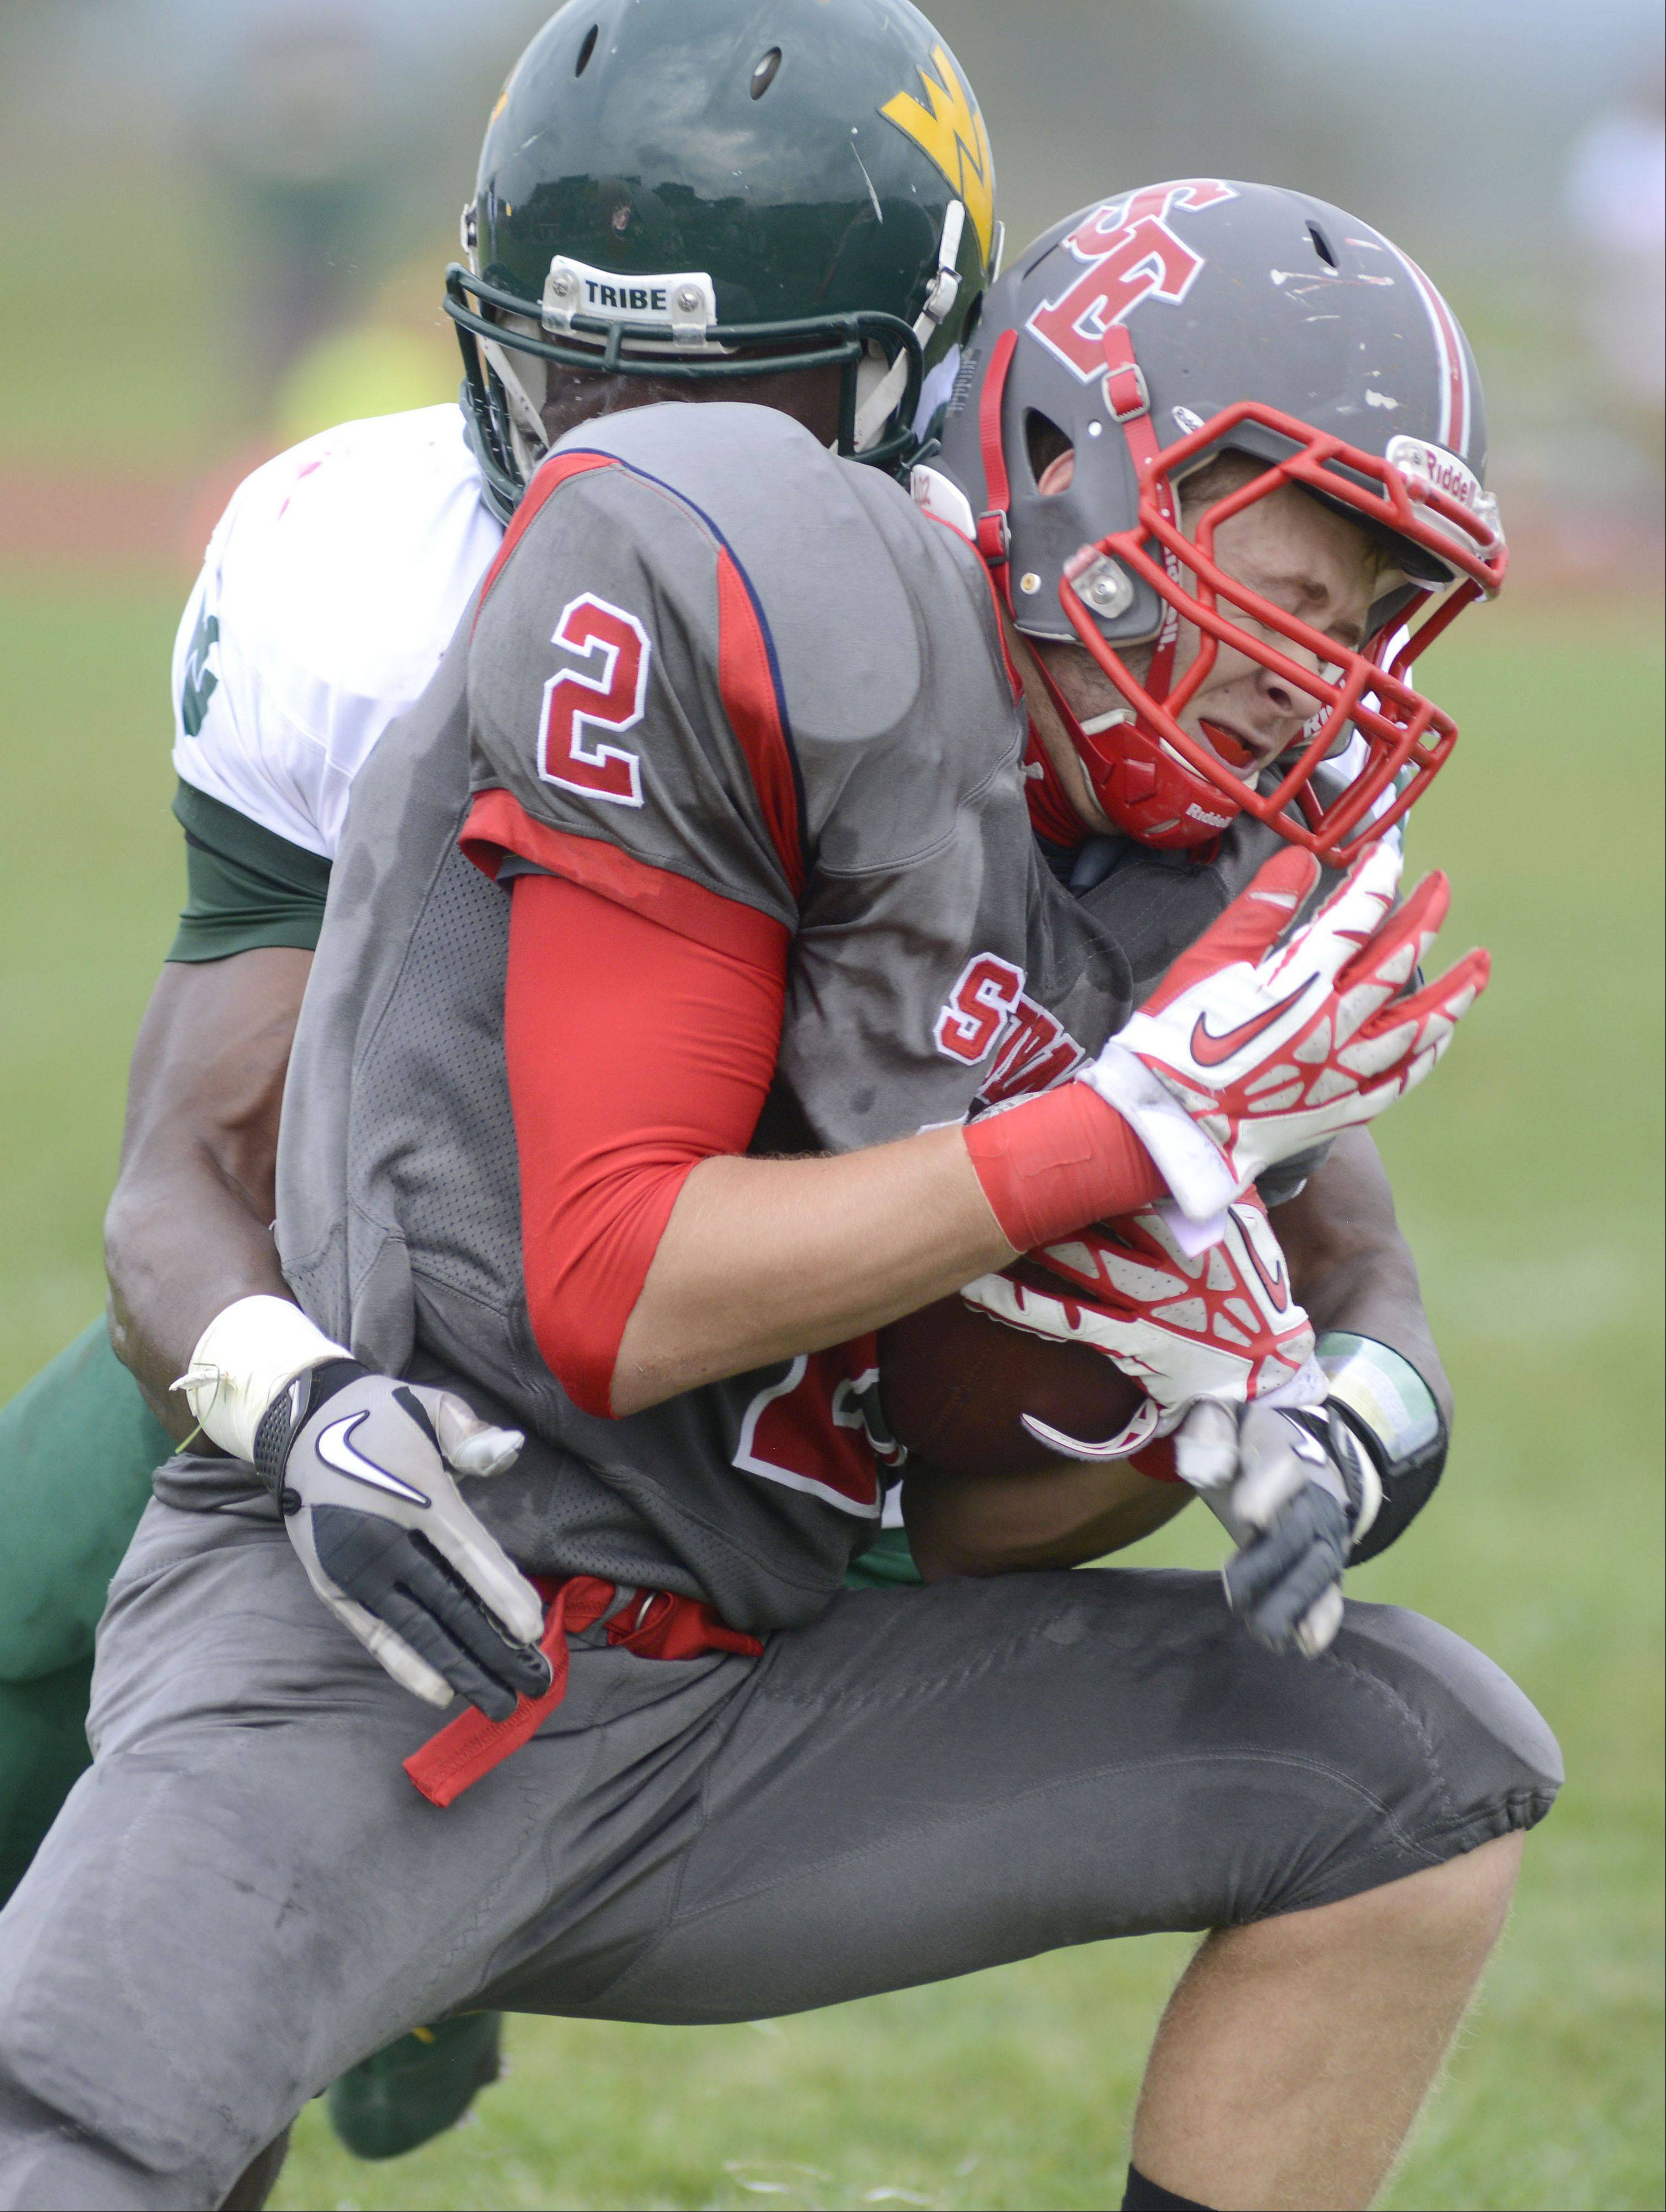 South Elgin's Andrew Kamienski is tackled hard by Waubonsie Valley's DeMario Webb in the first quarter on Saturday.